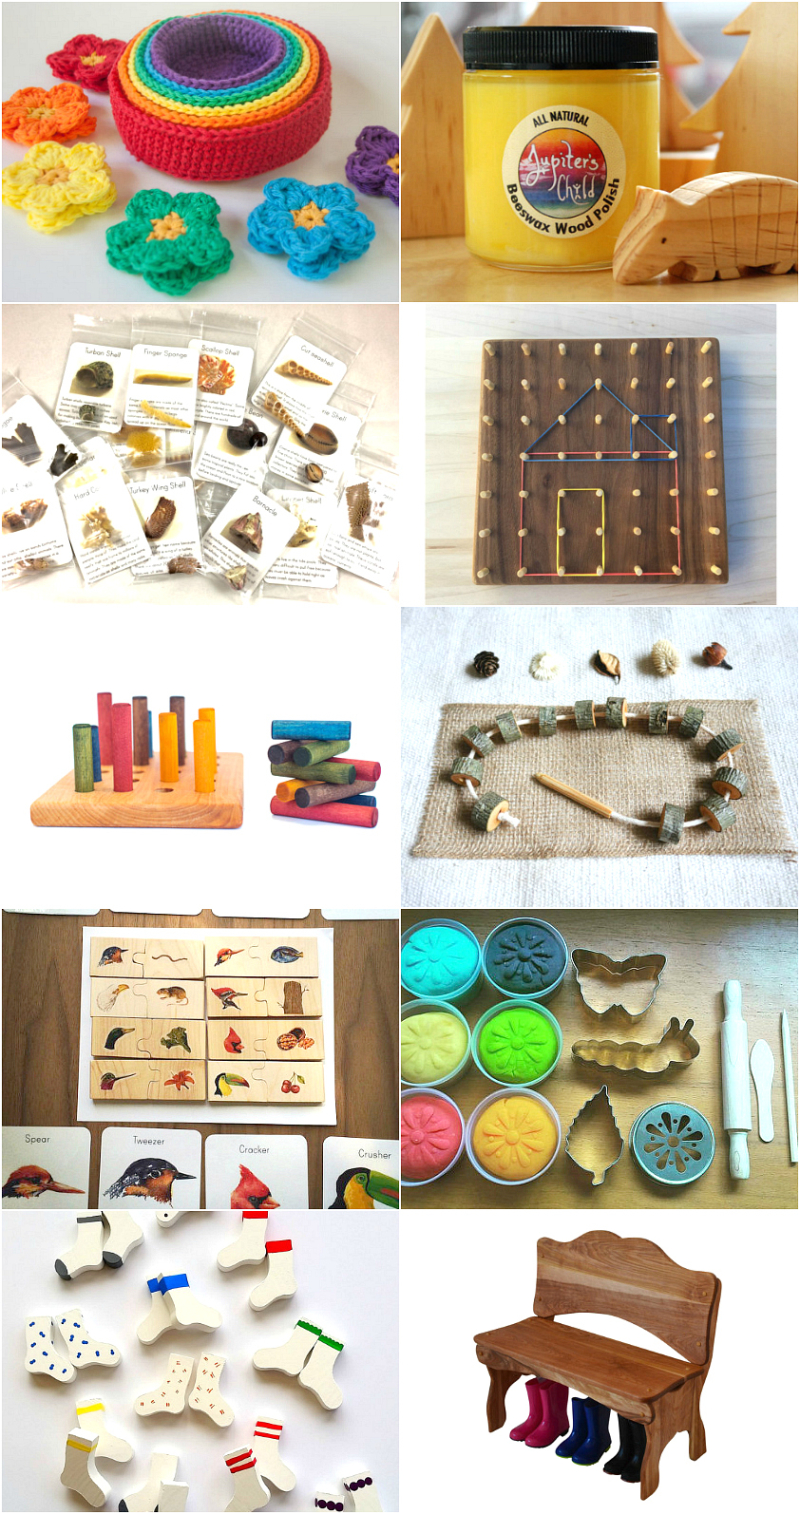 Montessori Materials for the Home on Etsy from How we Montessori